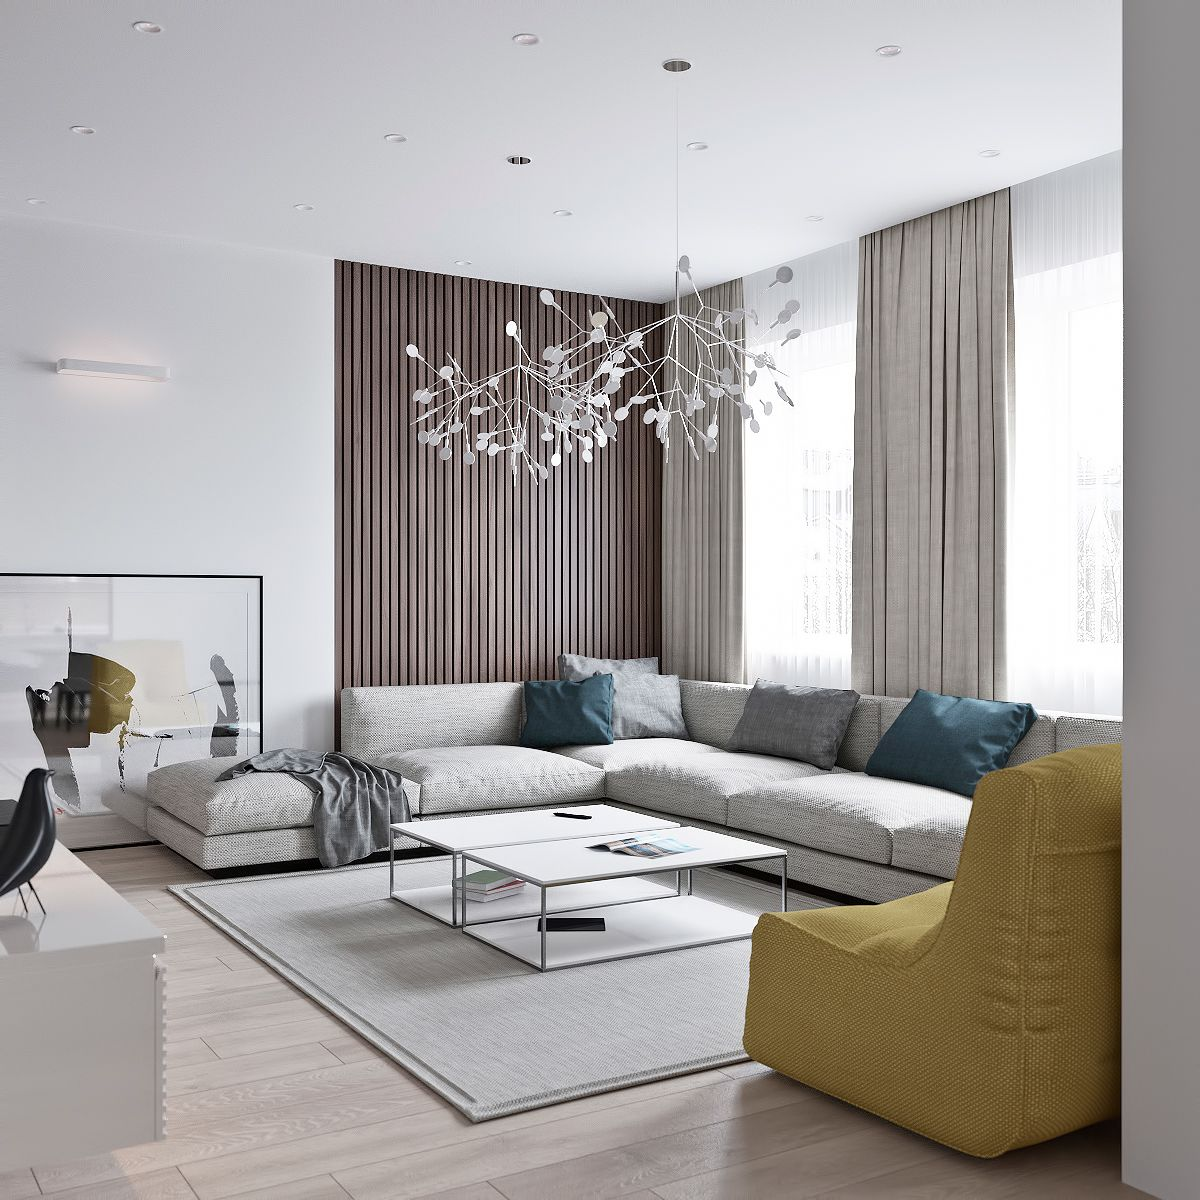 55 Beautiful Minimalist Living Room Ideas For Your Dream